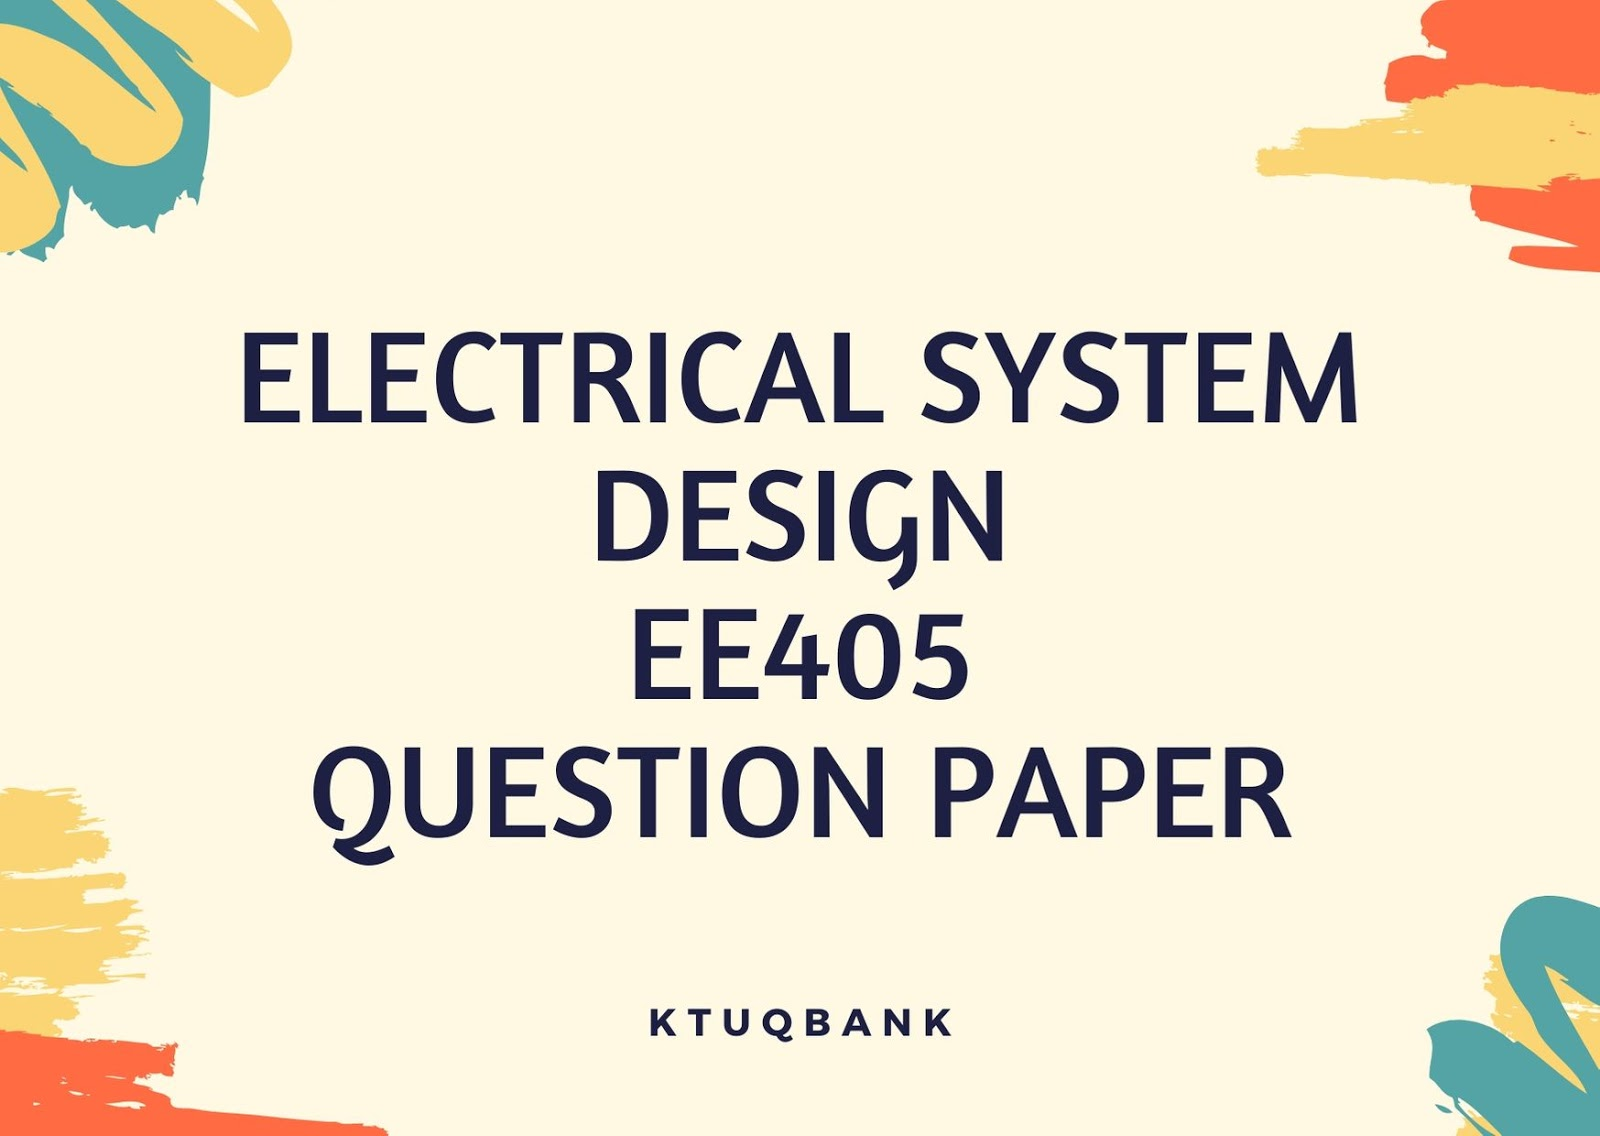 Electrical system design | EE405 | Question Papers (2015 batch)